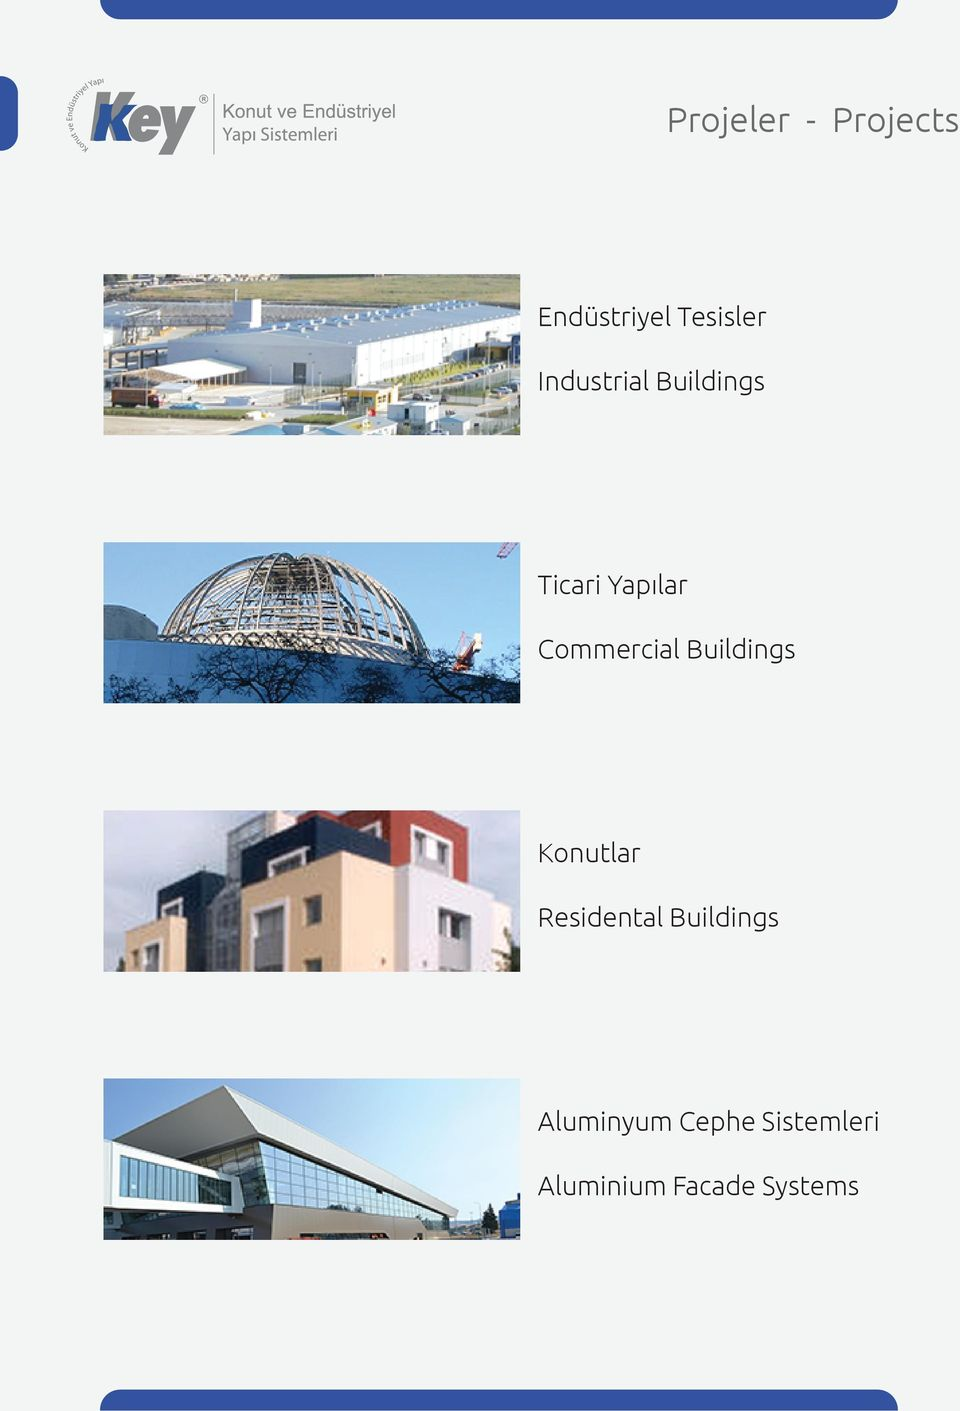 Commercial Buildings Konutlar Residental